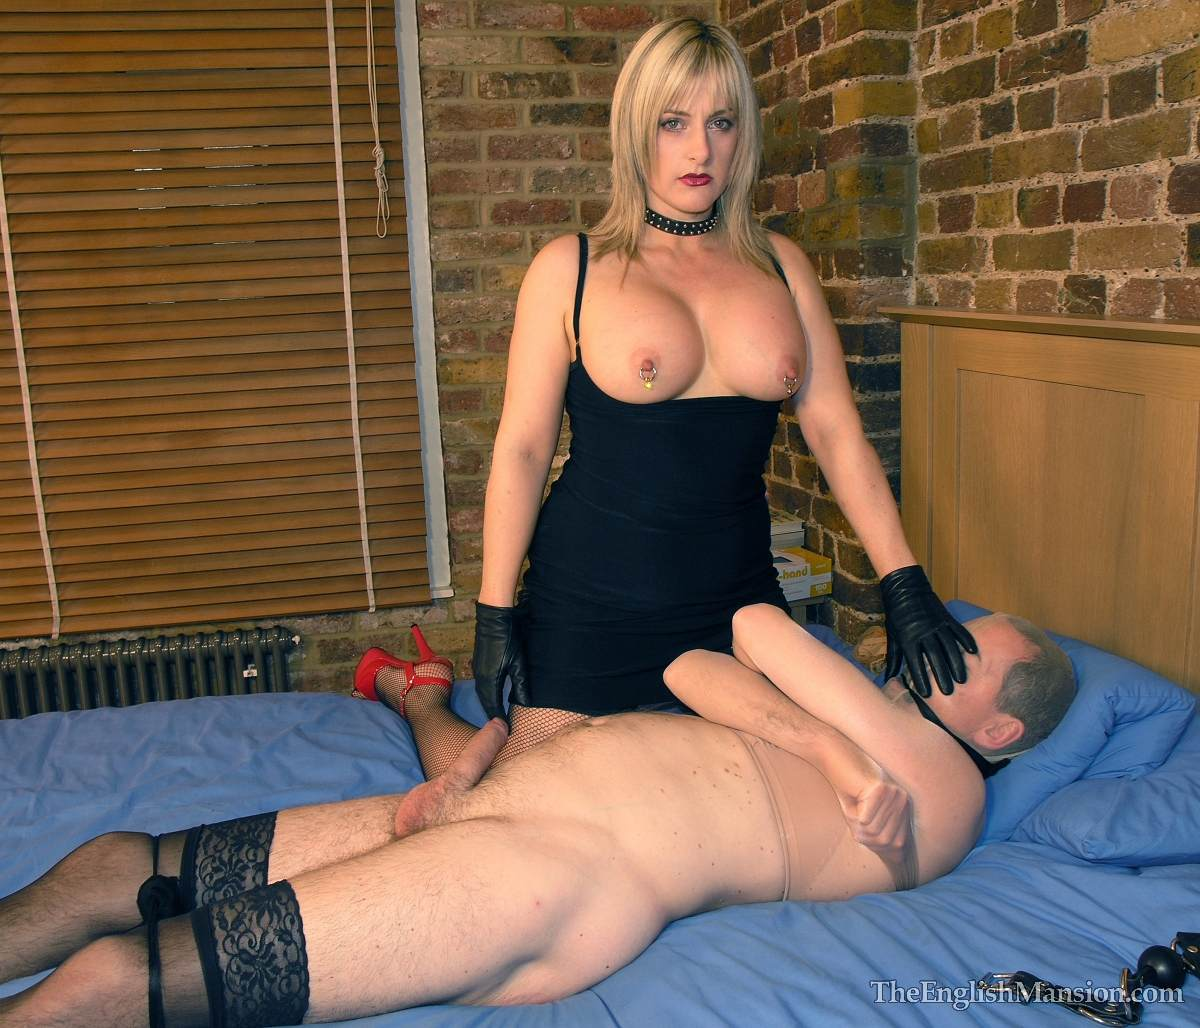 Picture #10 of MILF lady turns out to be dominant type of woman: binging a man with pantyhose right on a first date